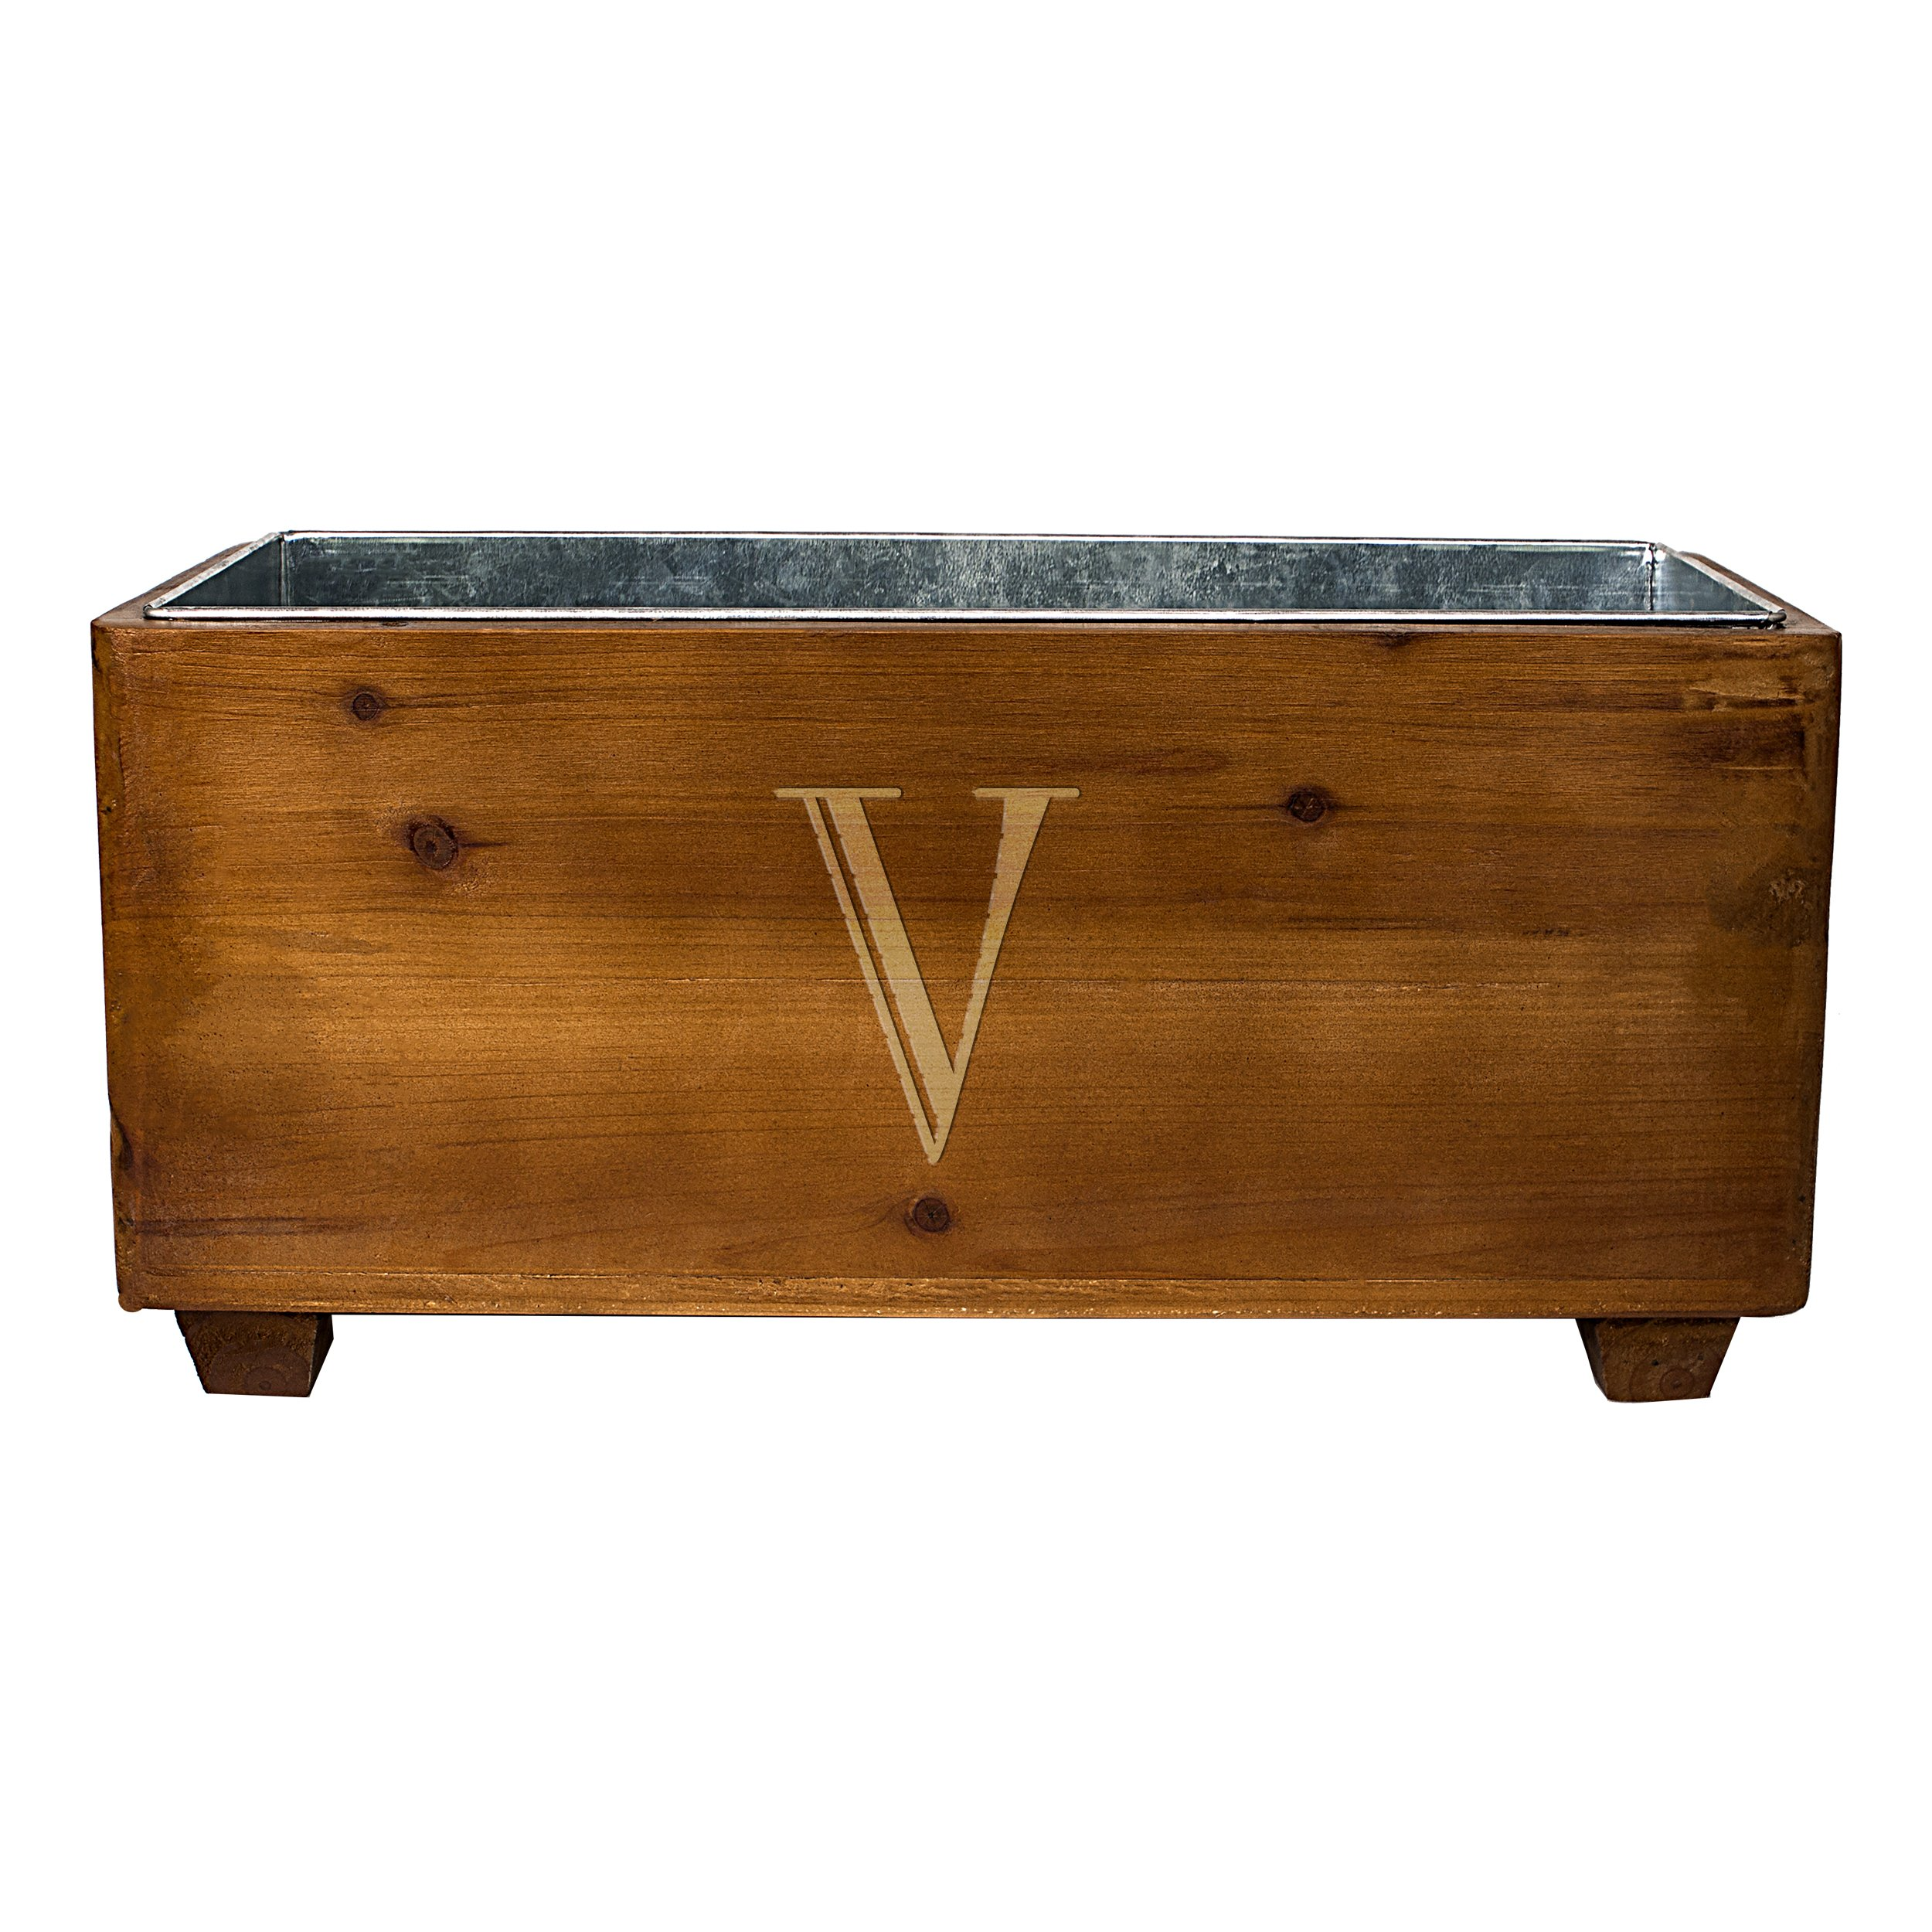 Cathy's Concepts Personalized Wooden Wine Trough, Letter V